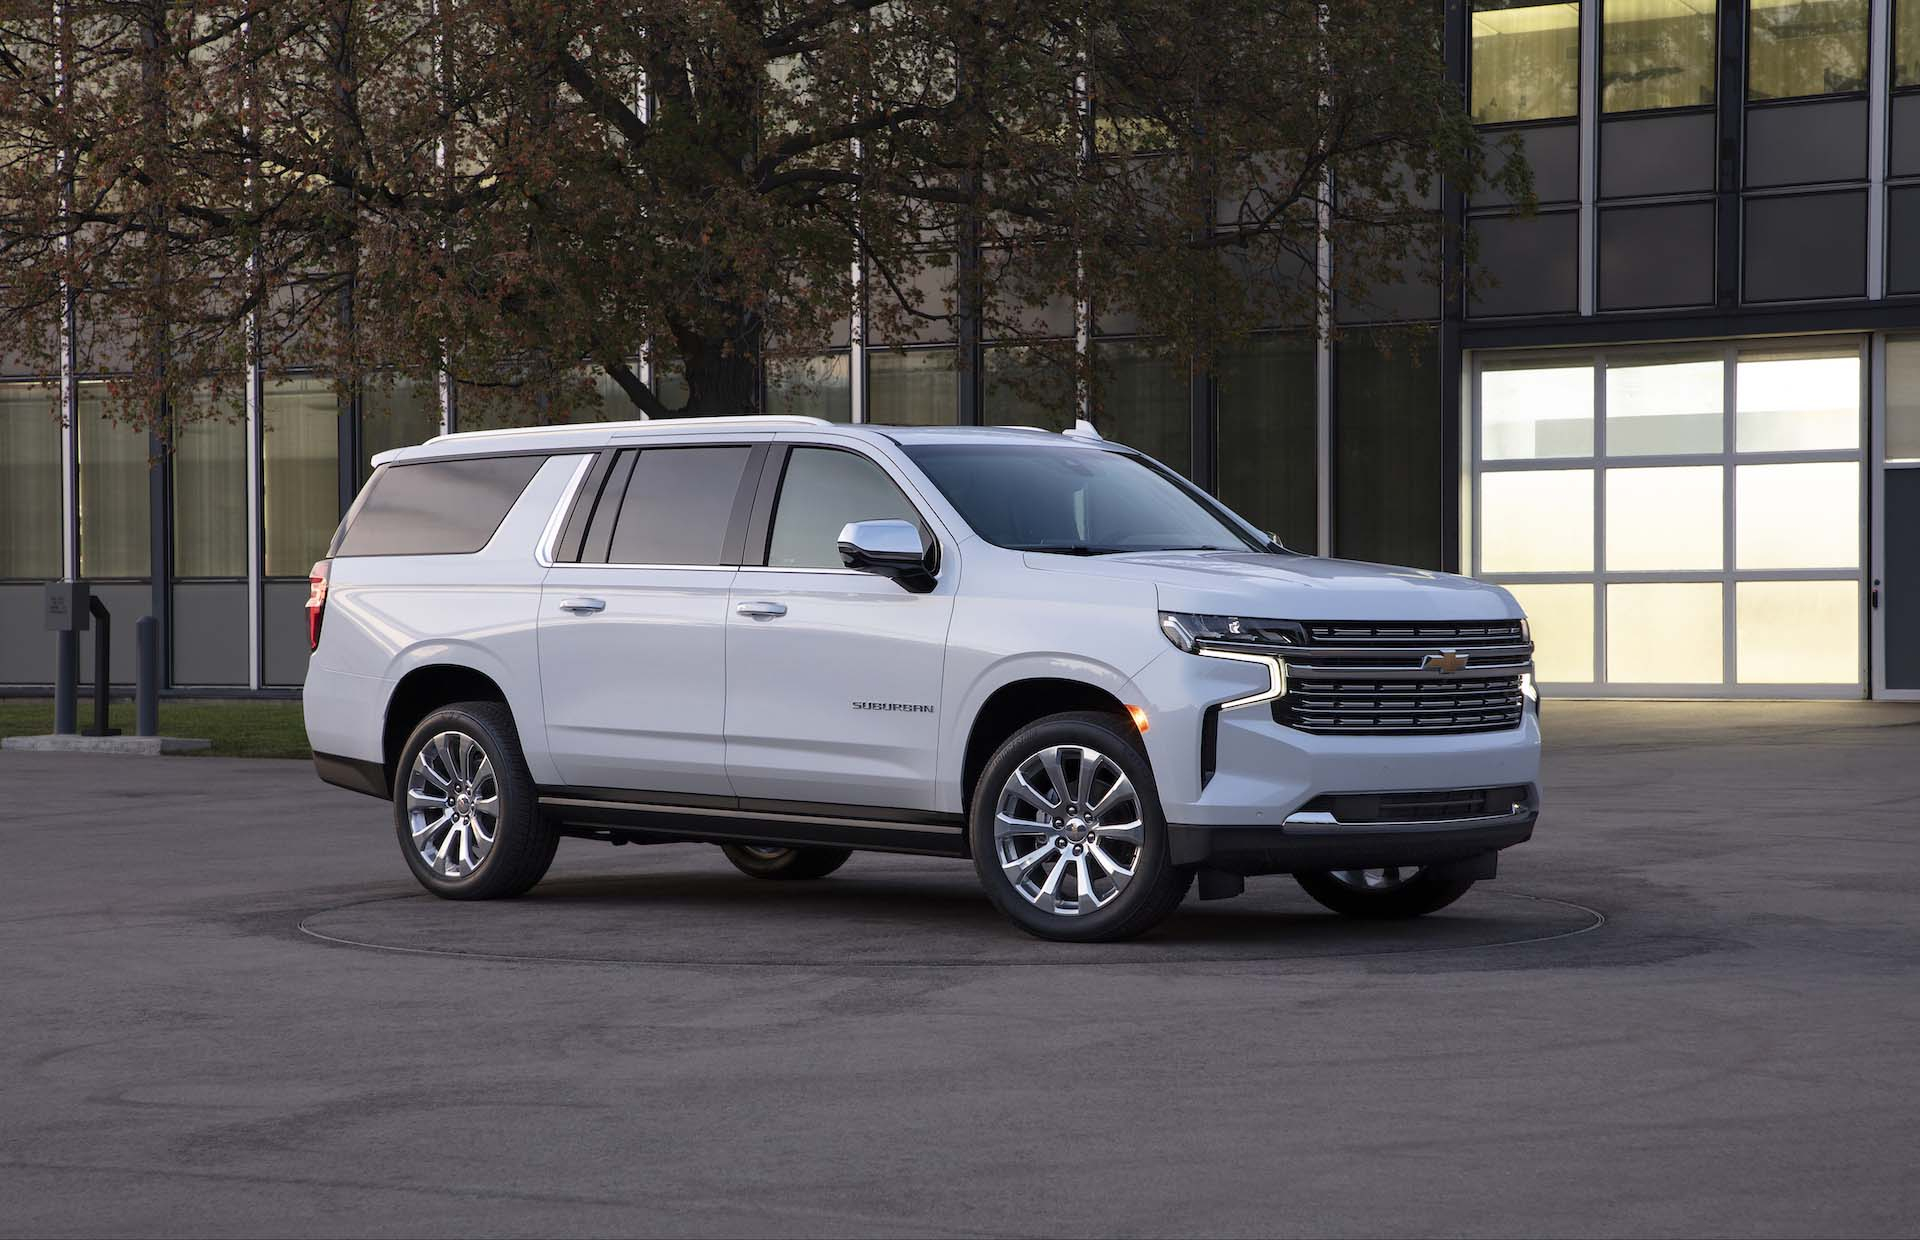 2021 Chevrolet Suburban (Chevy) Review, Ratings, Specs What Does A 2021 Chevy Suburban Cost